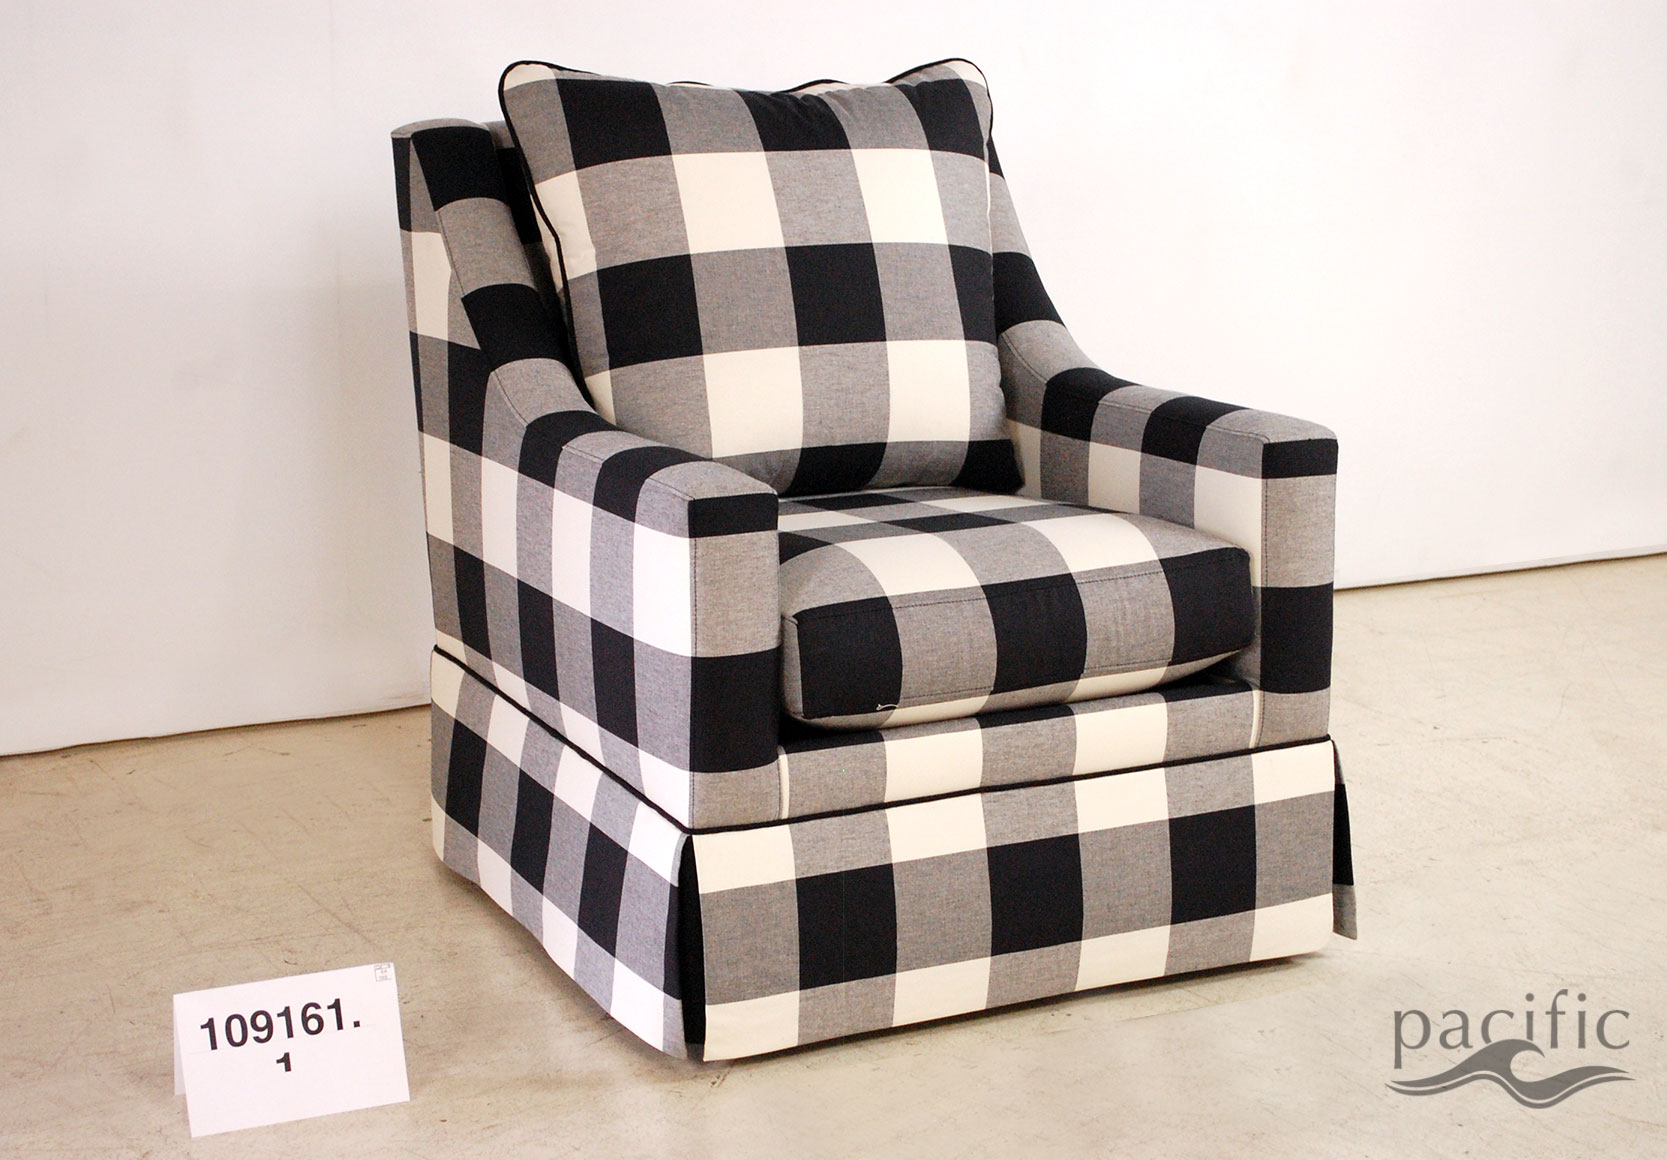 buffalo plaid chair folding toddler oh give me a home where the check roams current